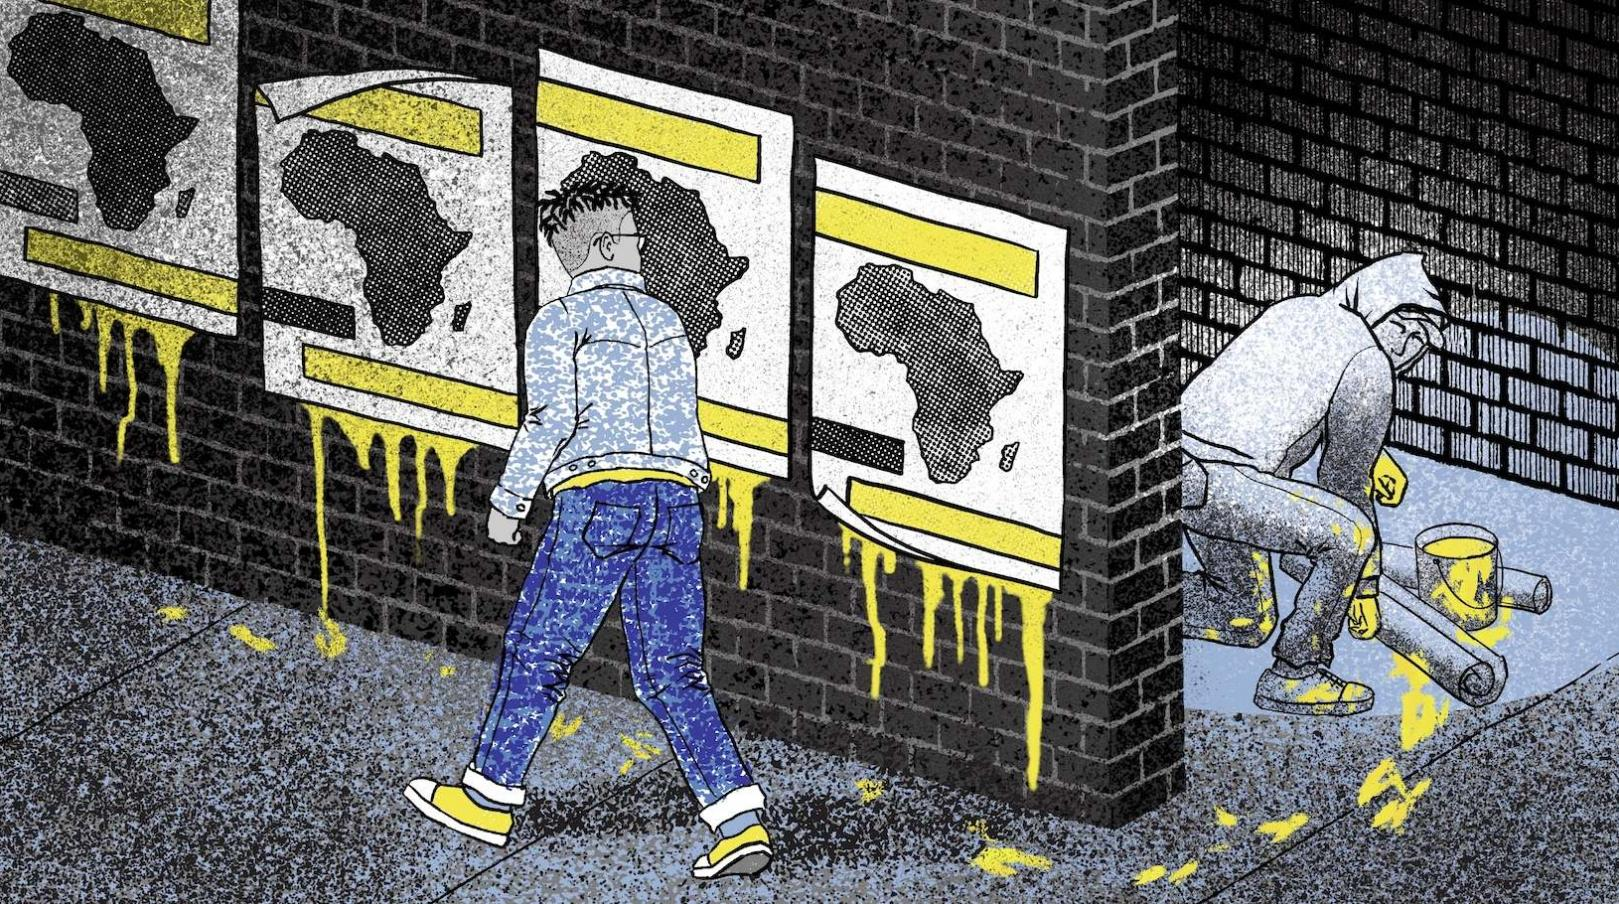 Posters of Africa being put up by a man in a hoodie, hiding in the shadows.